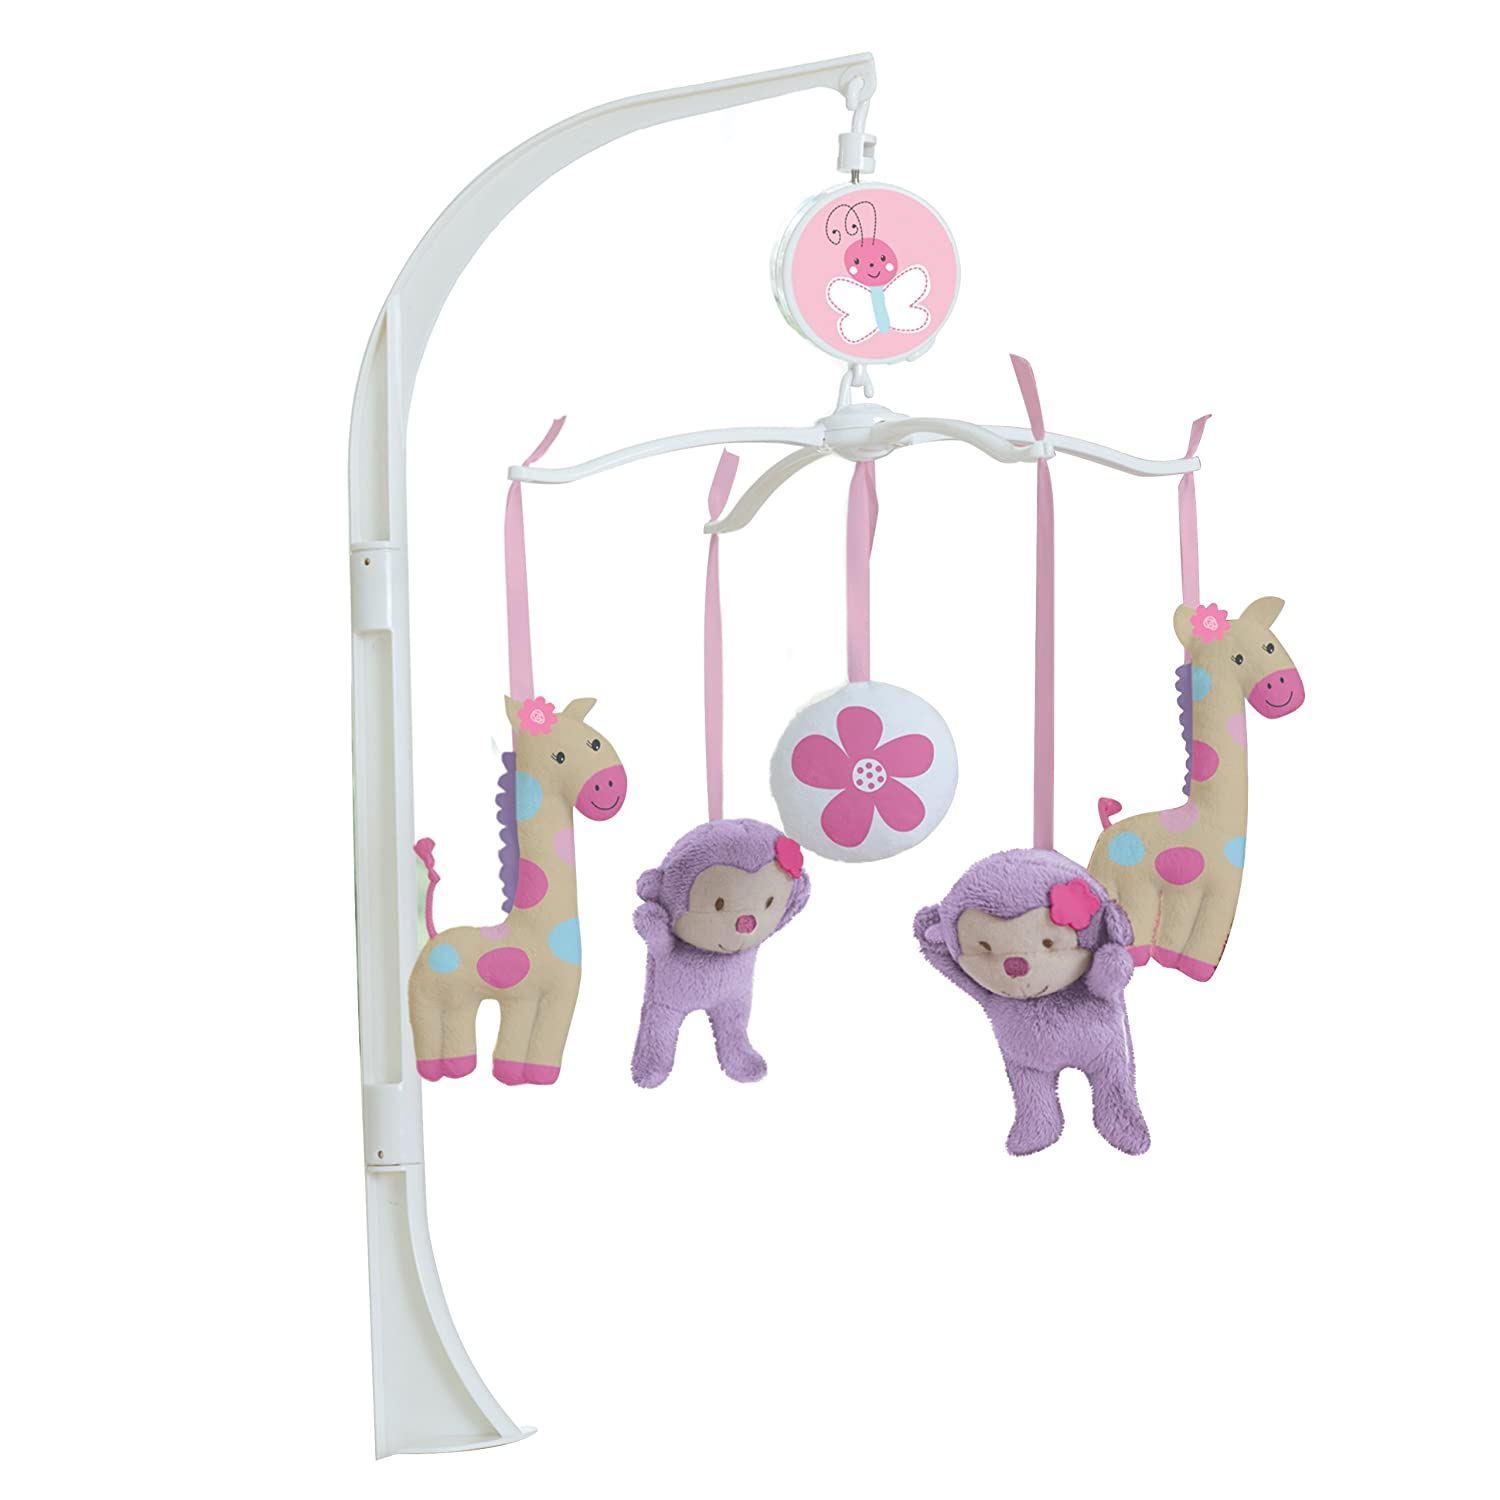 Baby bed mobile - Amazon Com Summer Infant Mobile Pretty Pals Nursery Mobiles Baby